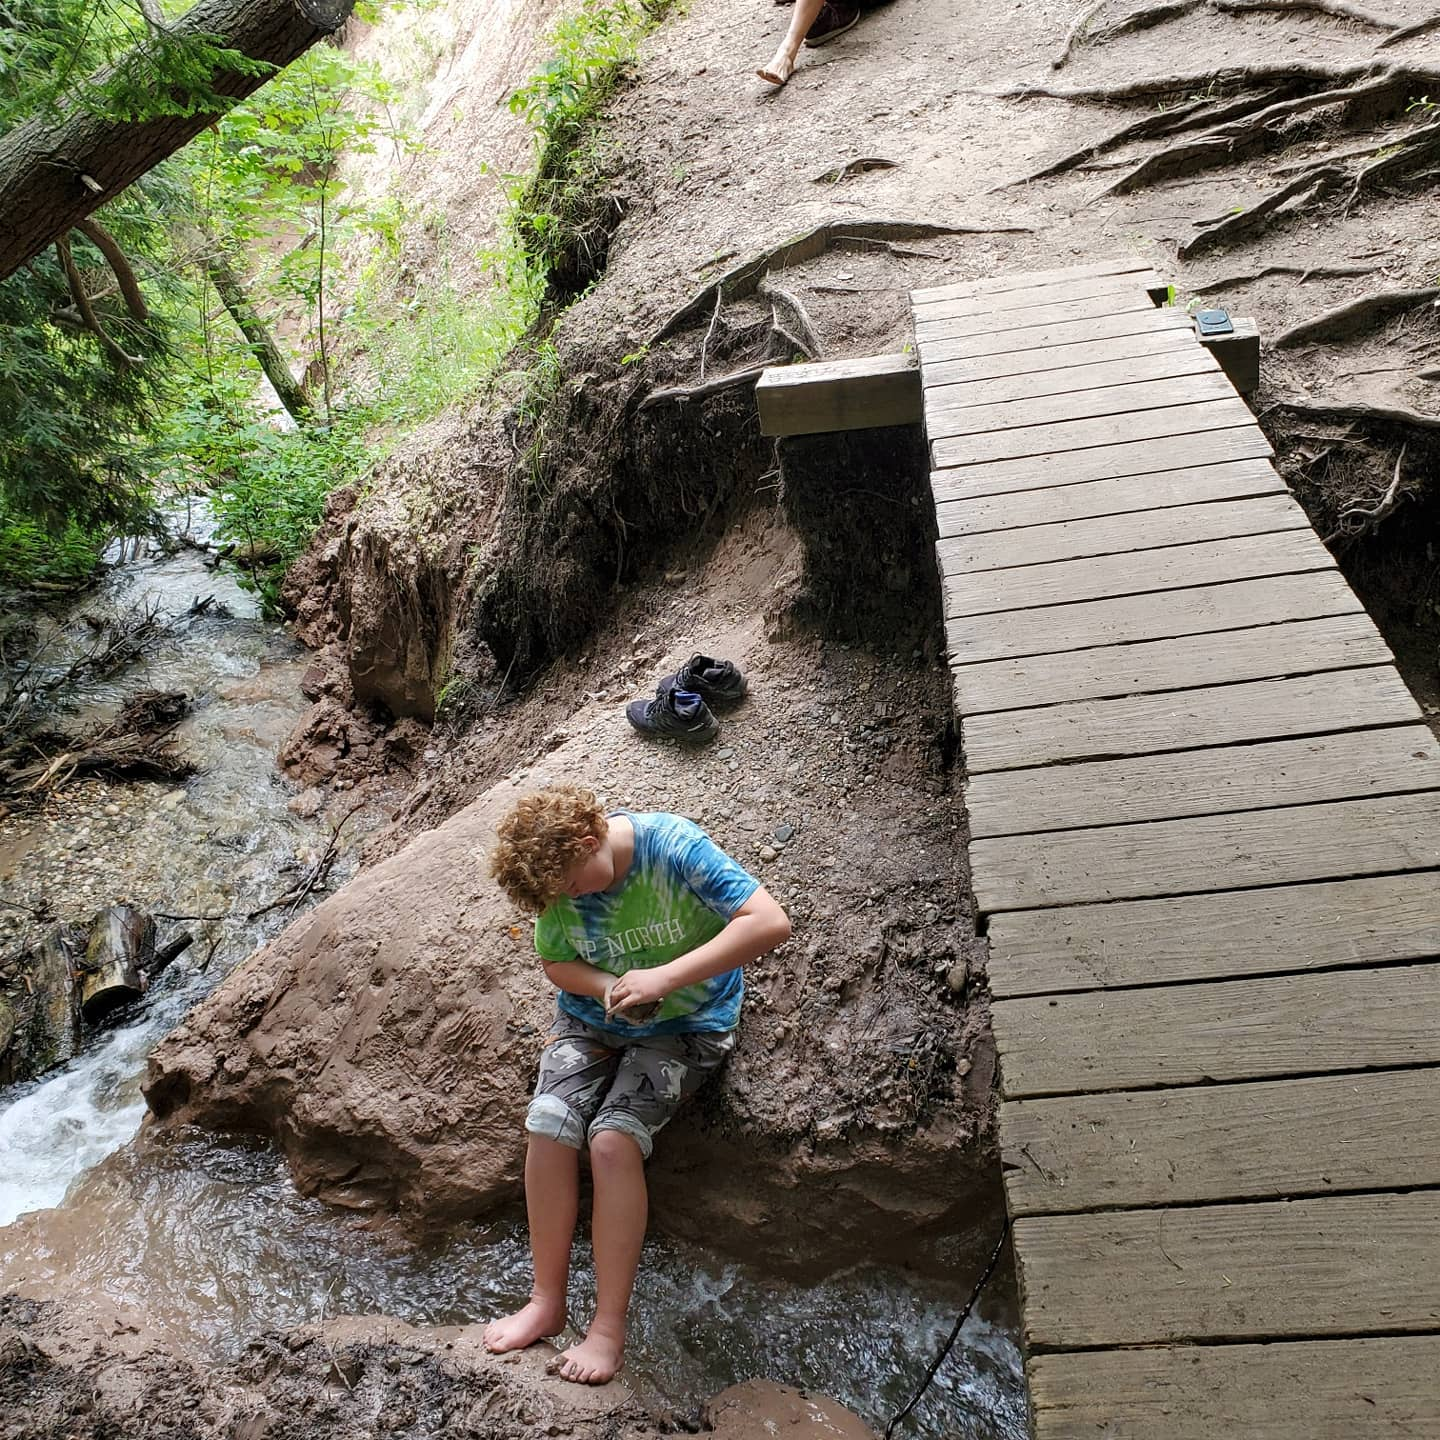 A few more highlights now that I'm back to signal land: clay pinch pots in waterfalls, suspension bridge, beaver watching, campsite with a view, a little rain and plenty of hiking